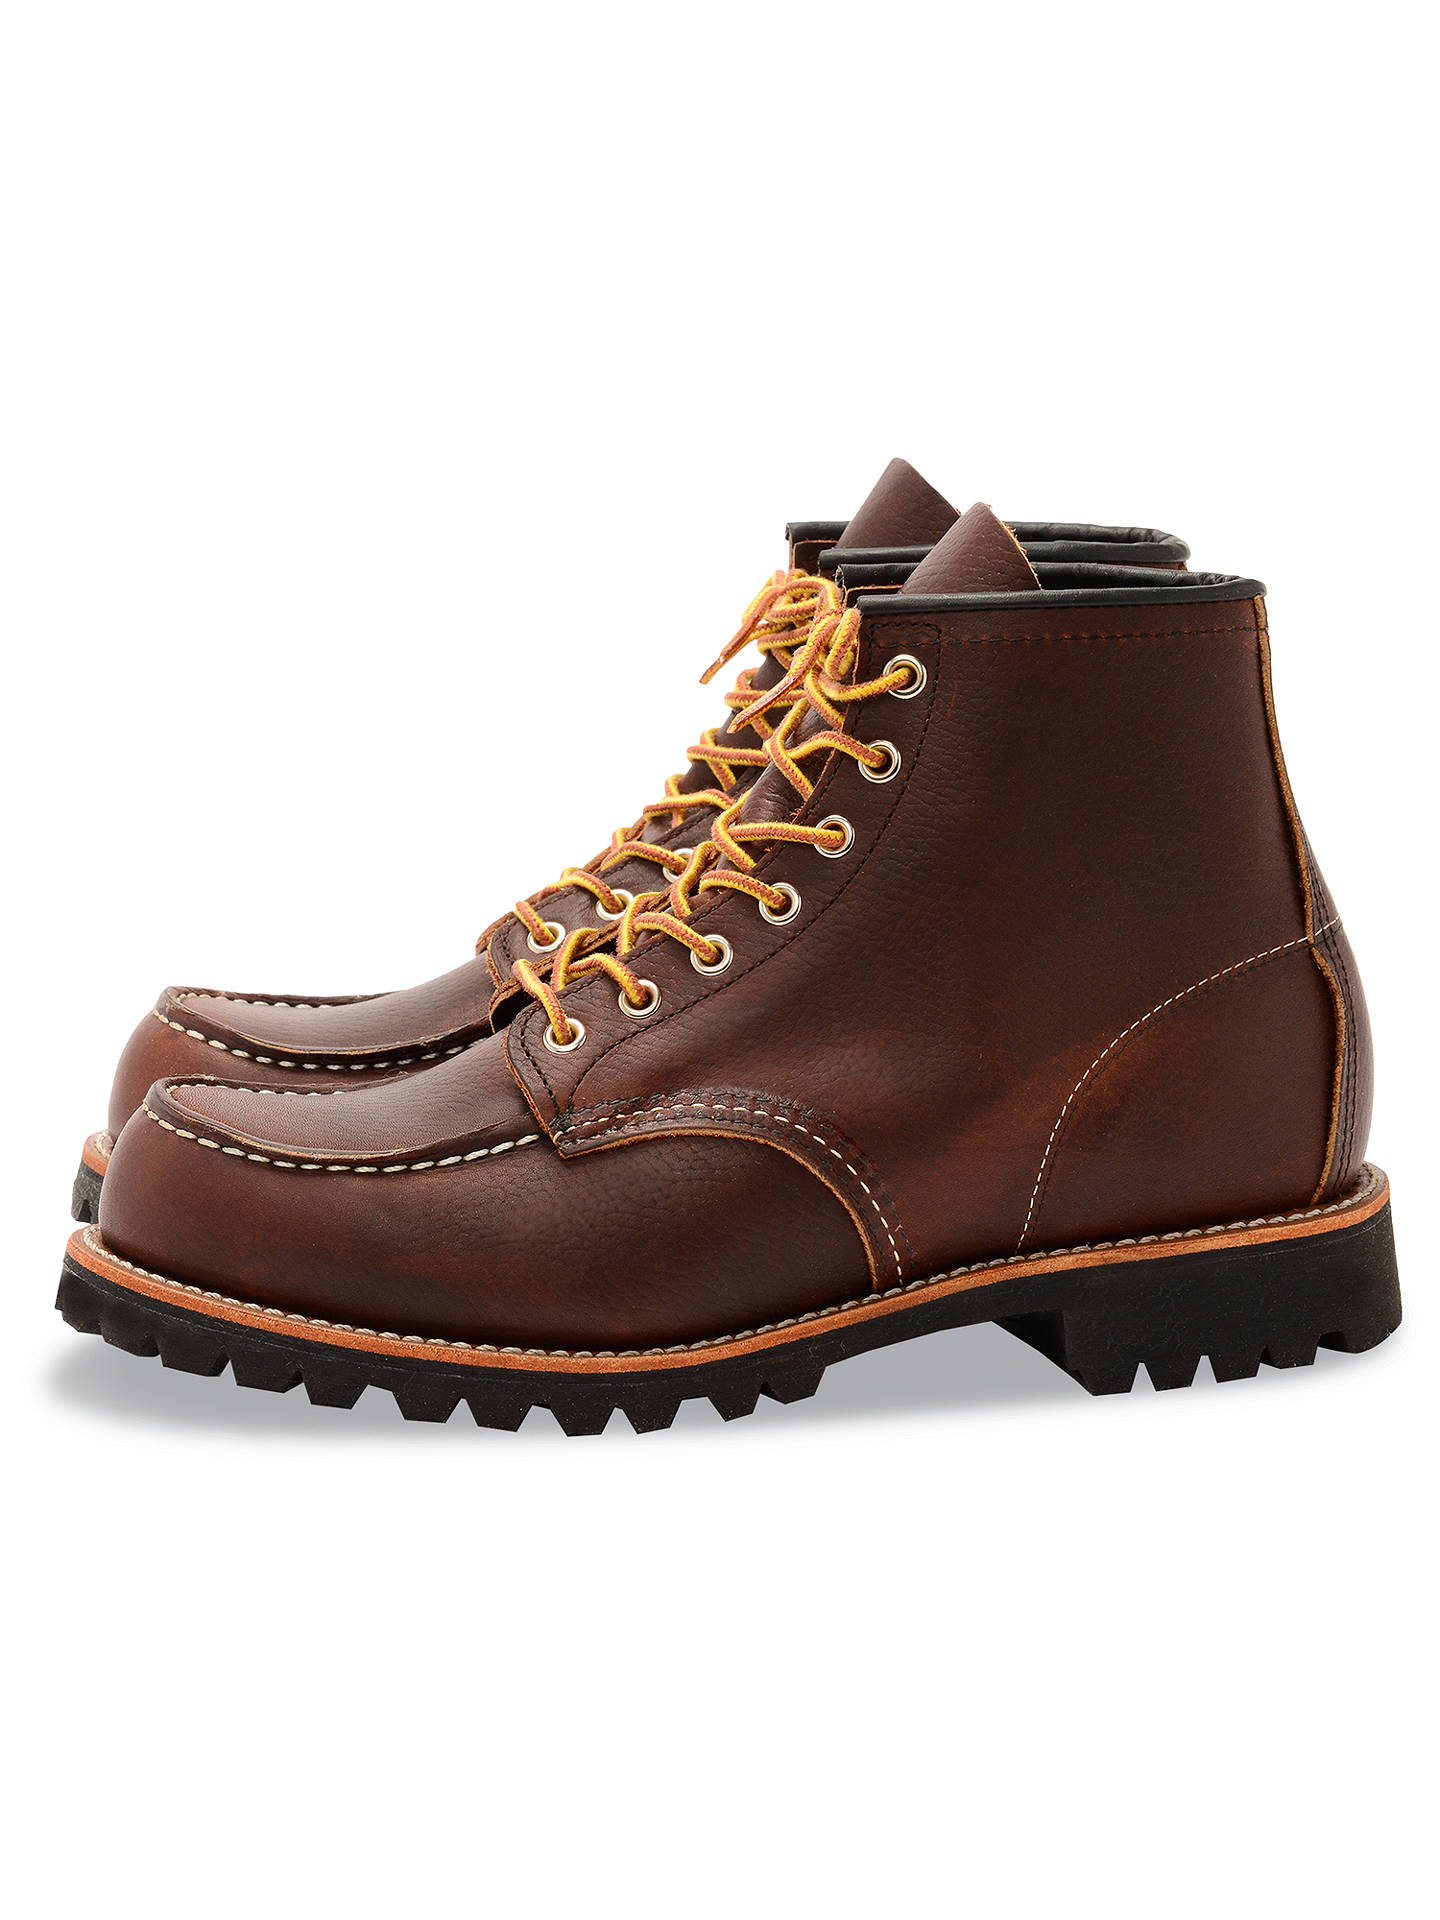 BuyRed Wing 8146 Roughneck Boots, Briar, 7 Online at johnlewis.com